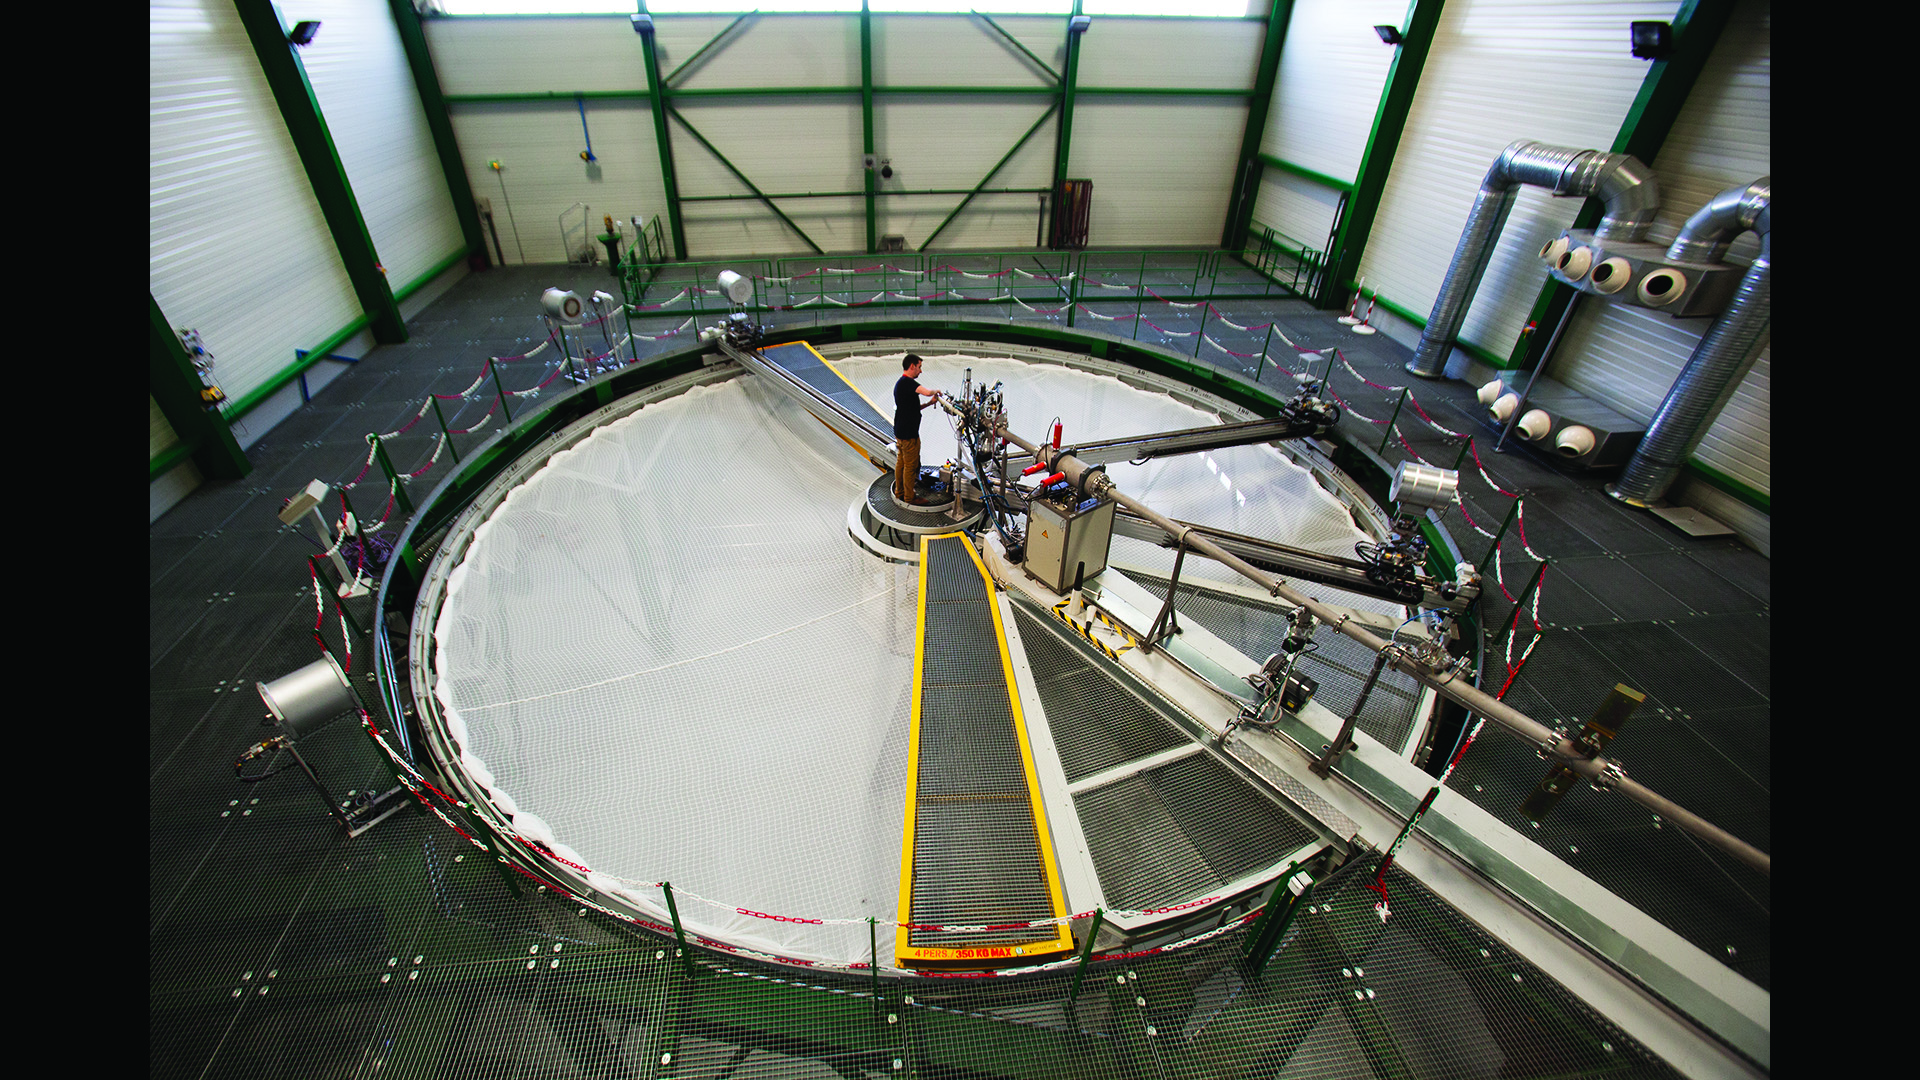 Calibration in a monoenergetic field: the AMANDE facility